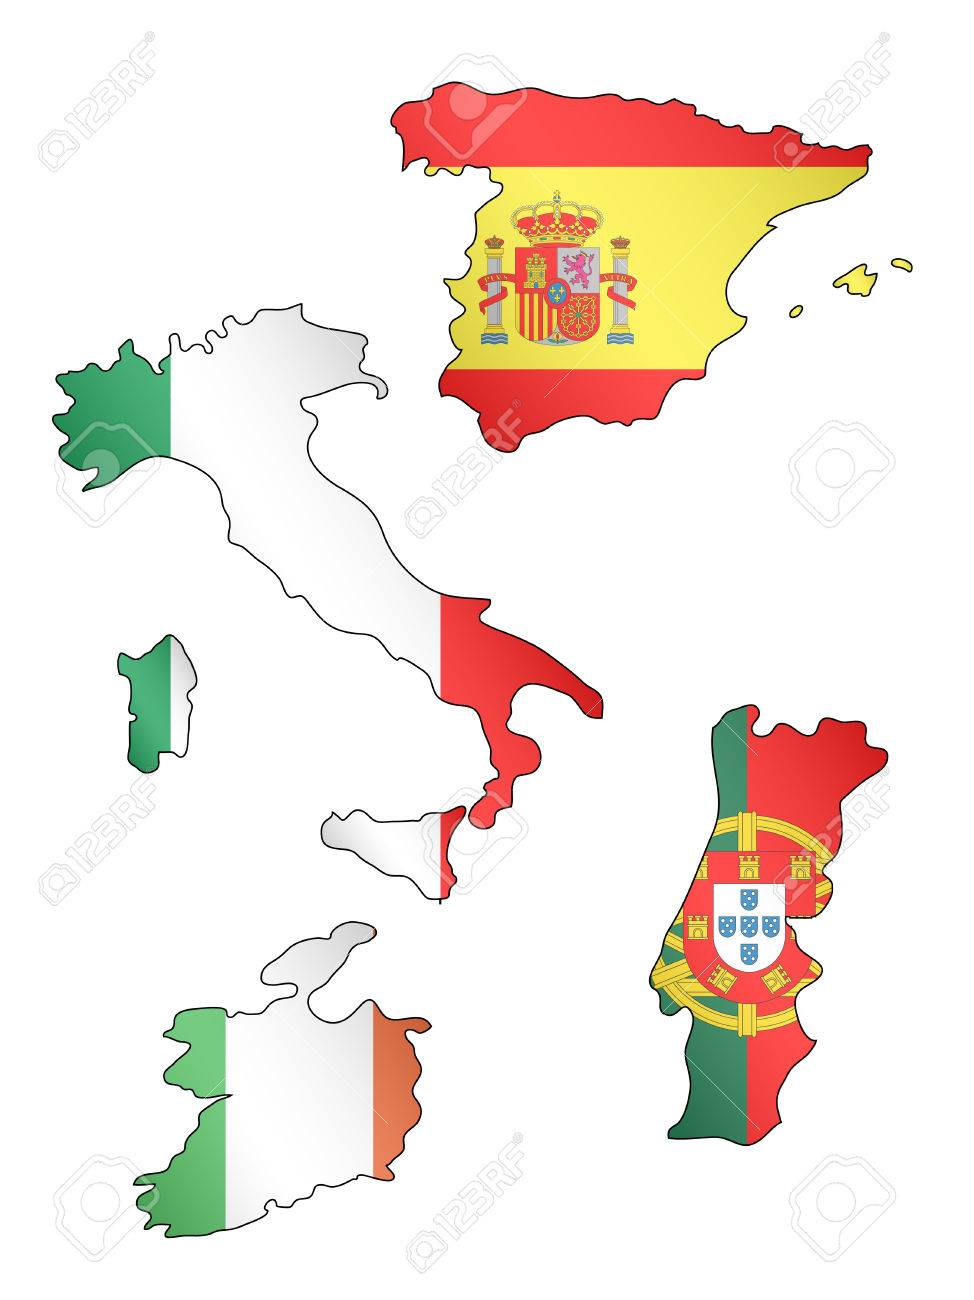 Europe Maps With Spain Portugal Italy And Ireland Flags Royalty - Portugal italy map